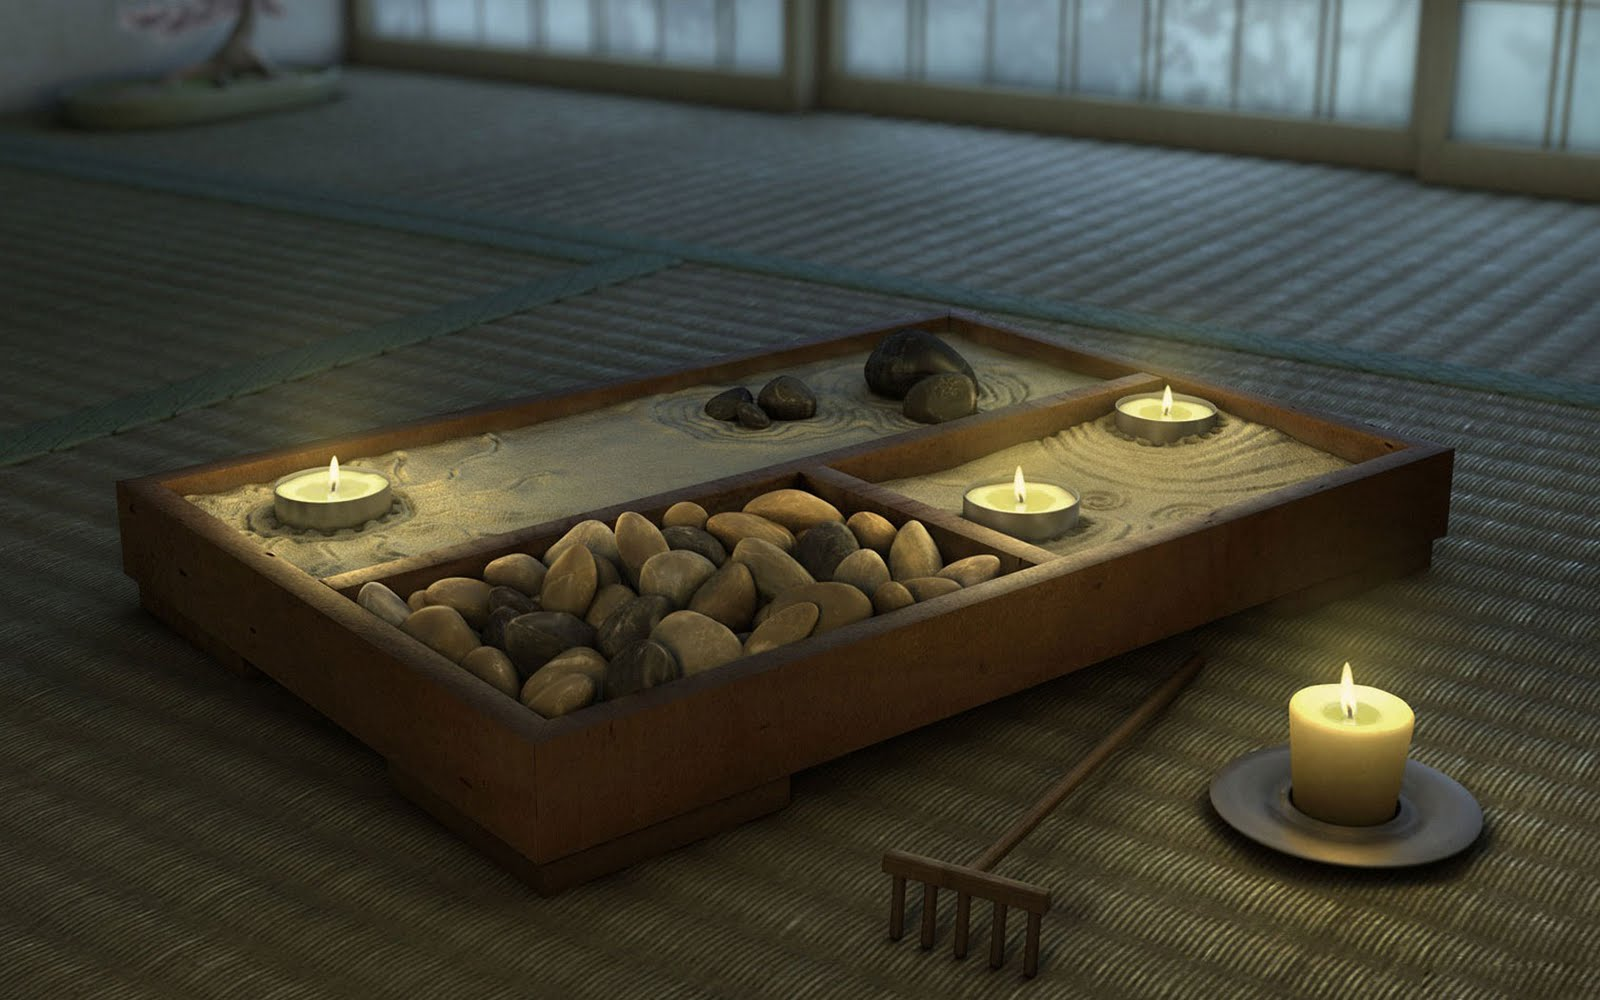 Zen rock garden wallpaper - Hd Wallpapers Mini Japanese Zen Garden Wallpaper 1600x1000